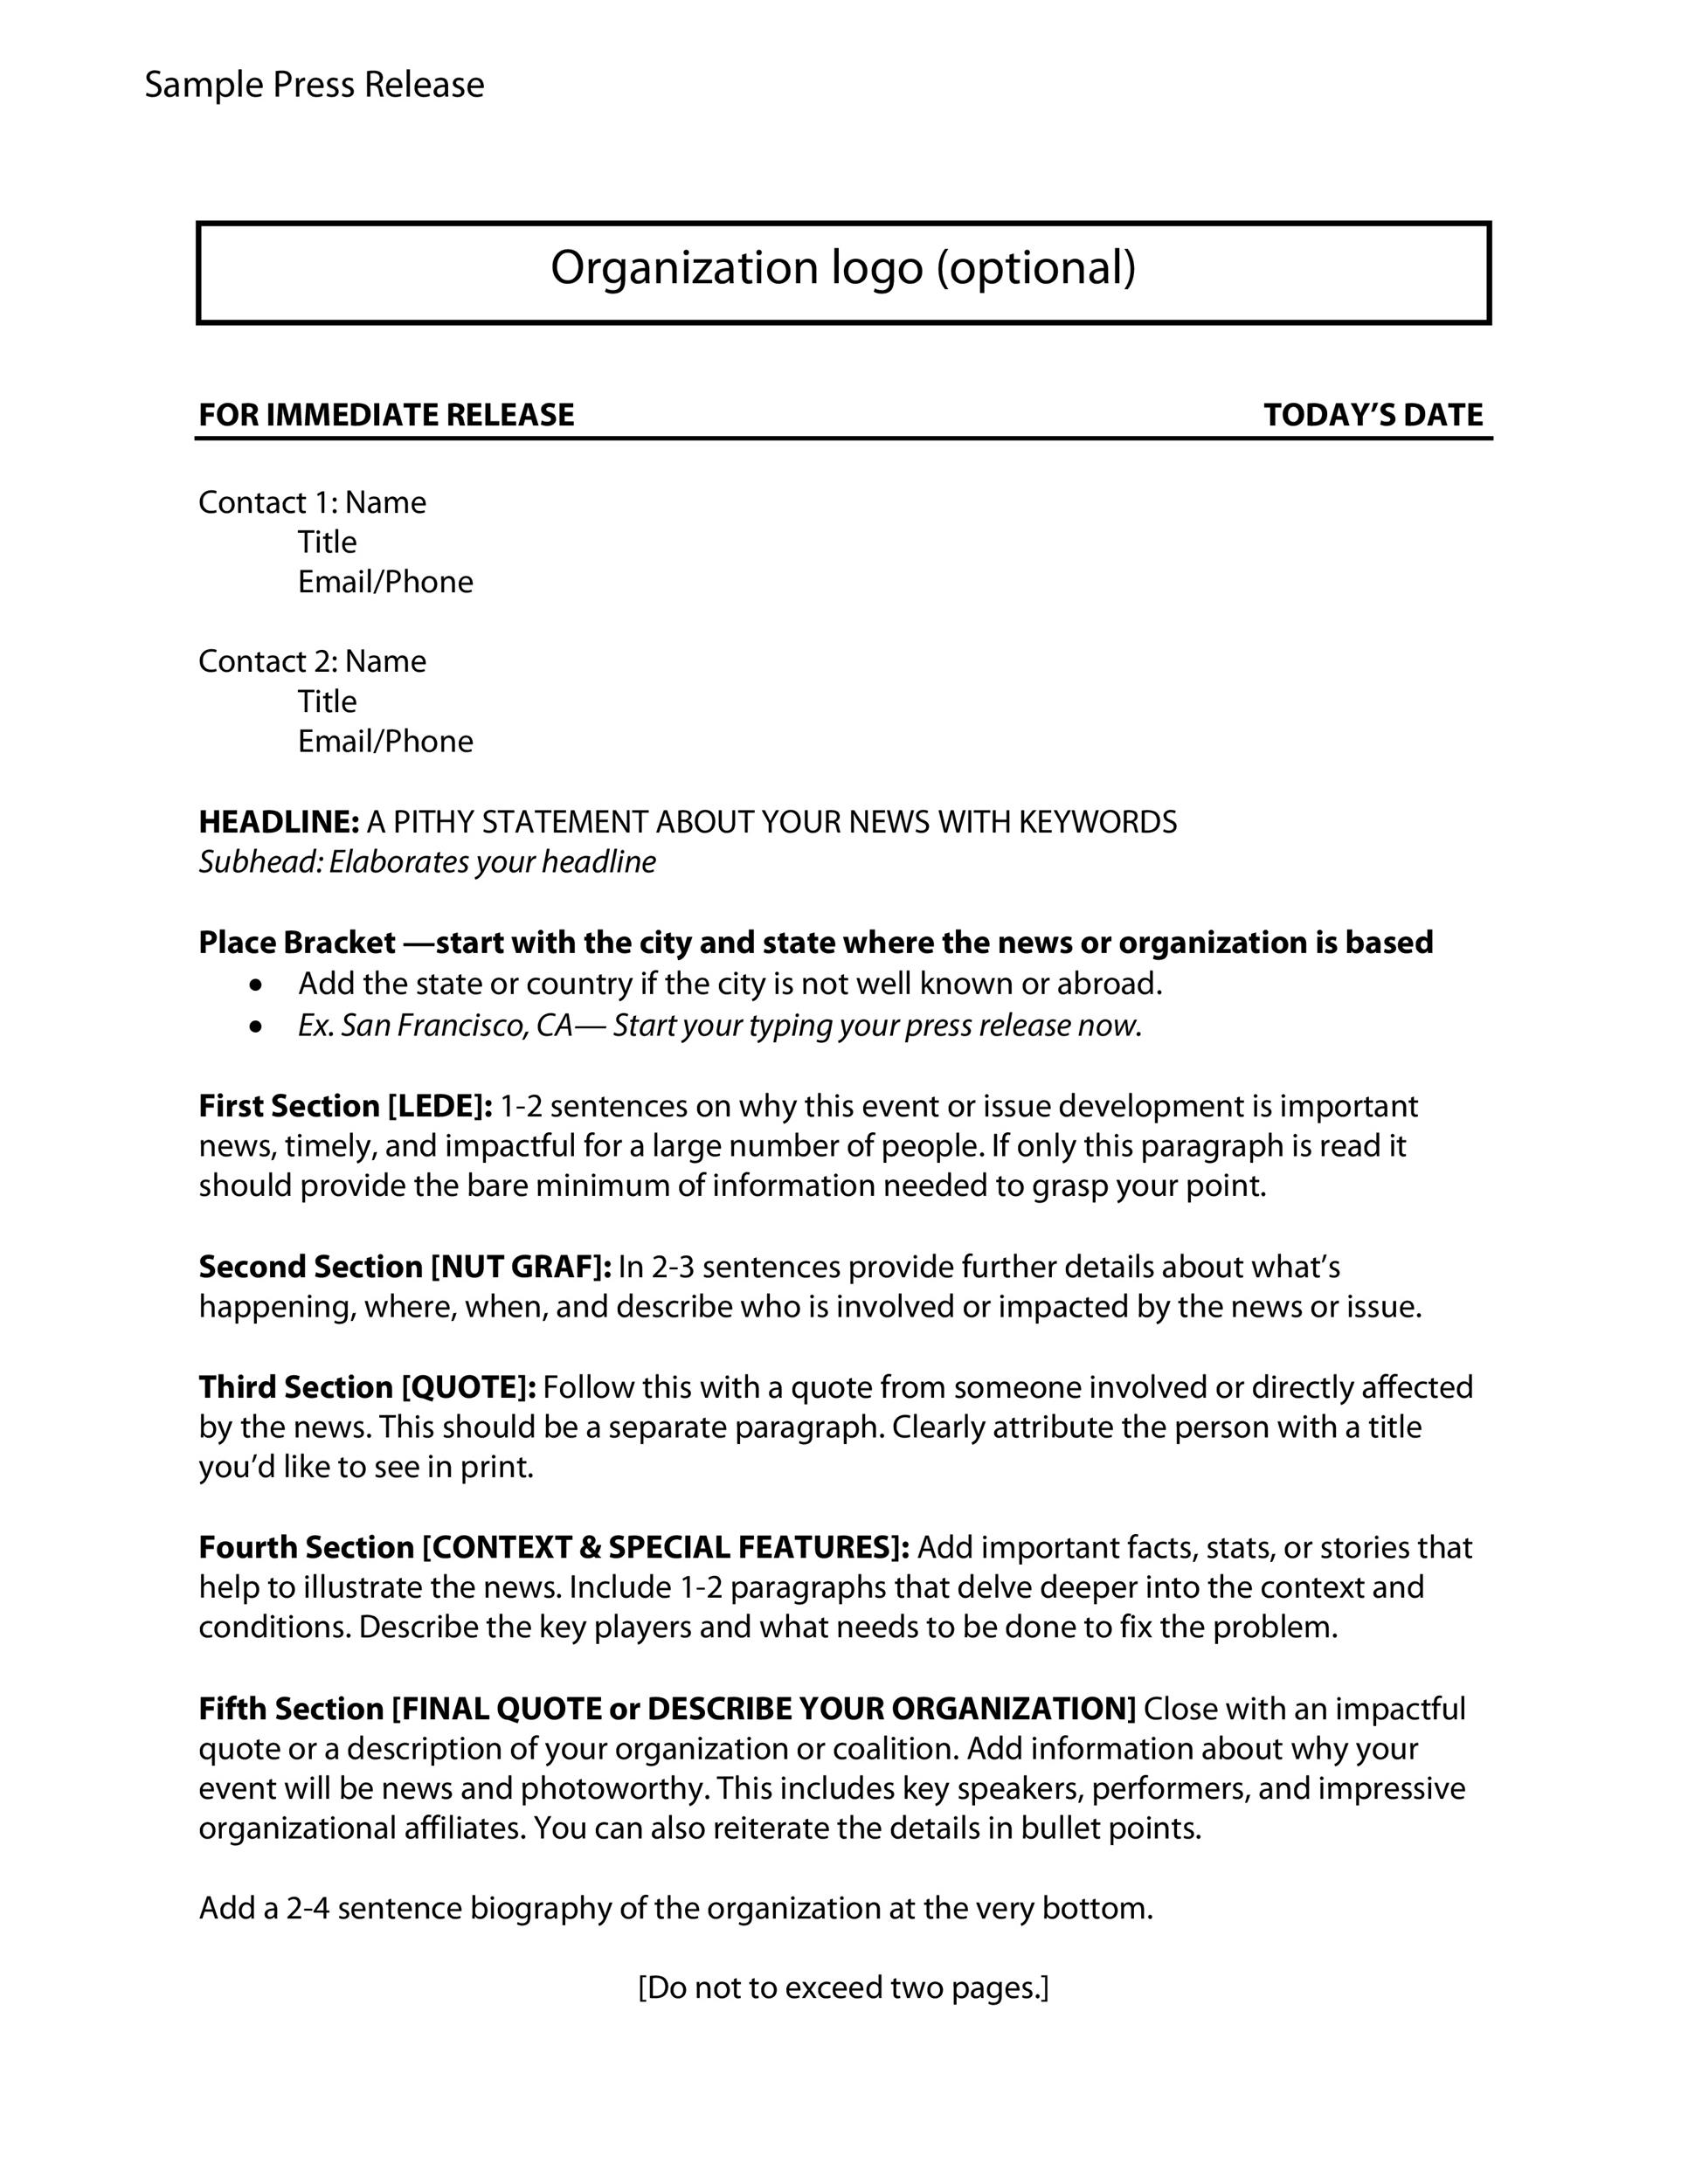 Free Press release template 30